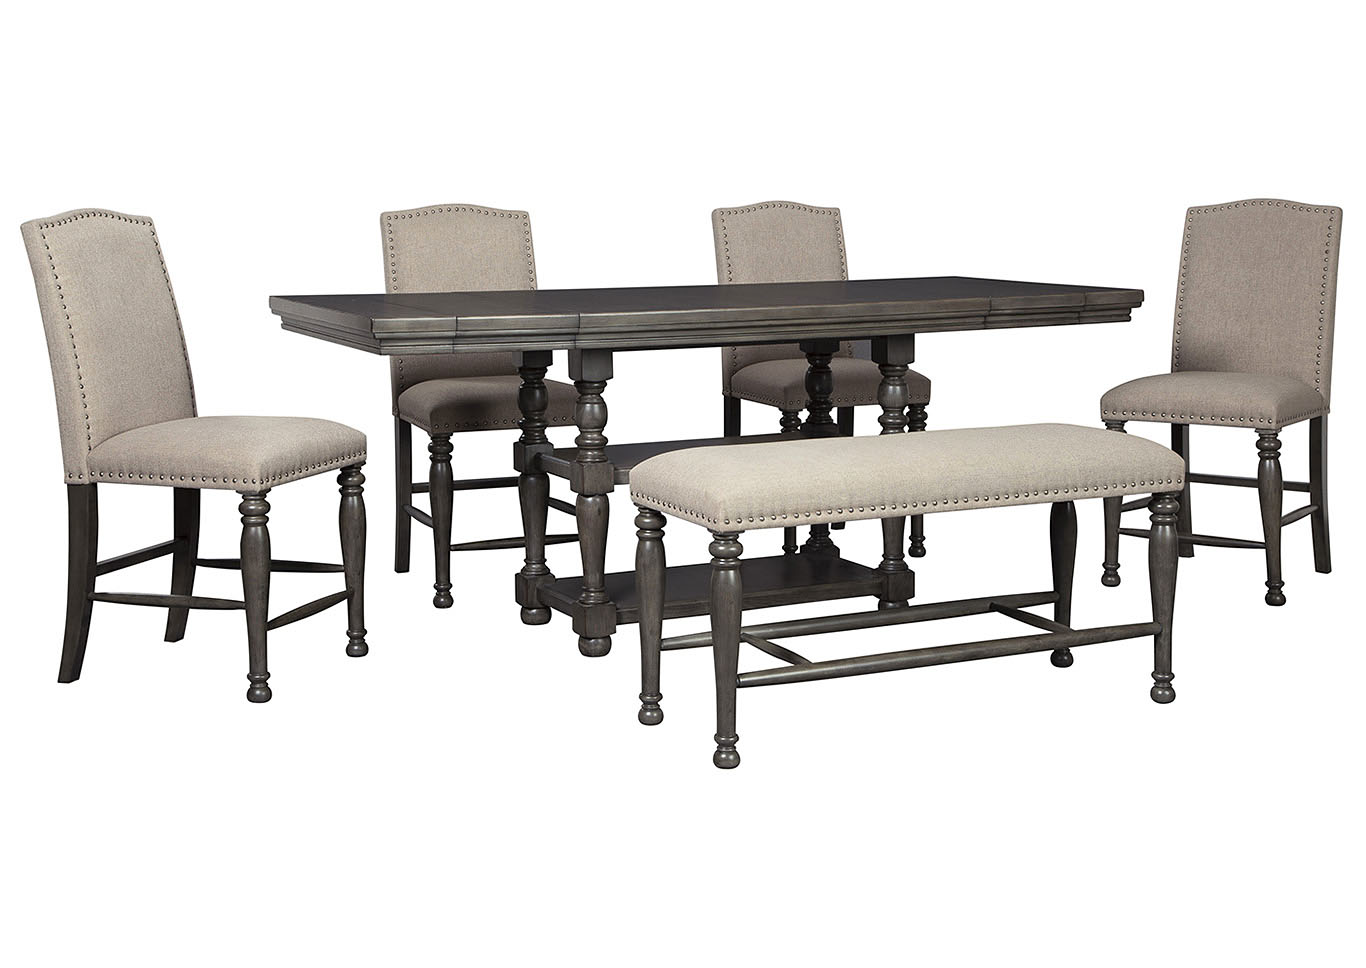 Audberry Dining Set W 4 Bar Stools Bench The Furniture Shop Duncanville Tx